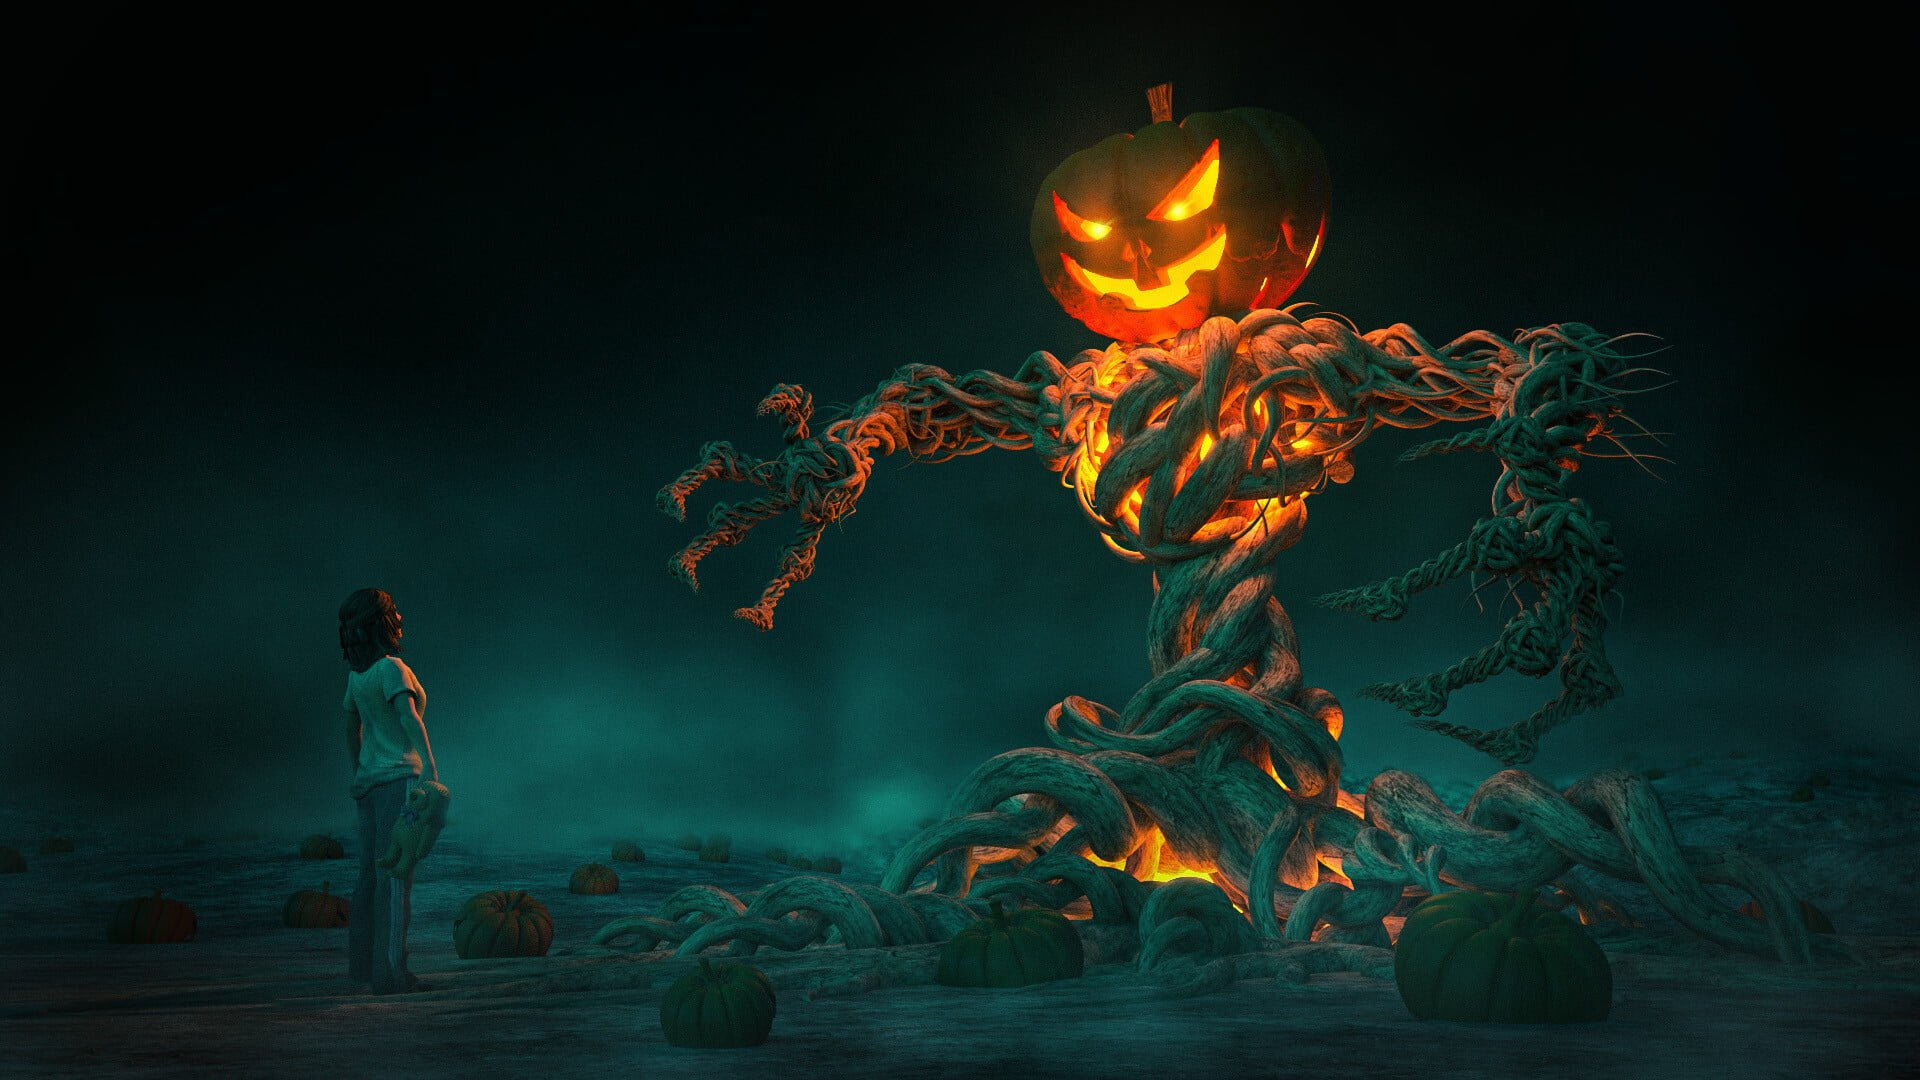 Pixelwish, 3D Design, Roots of Evil, Scary, Halloween, Artwork